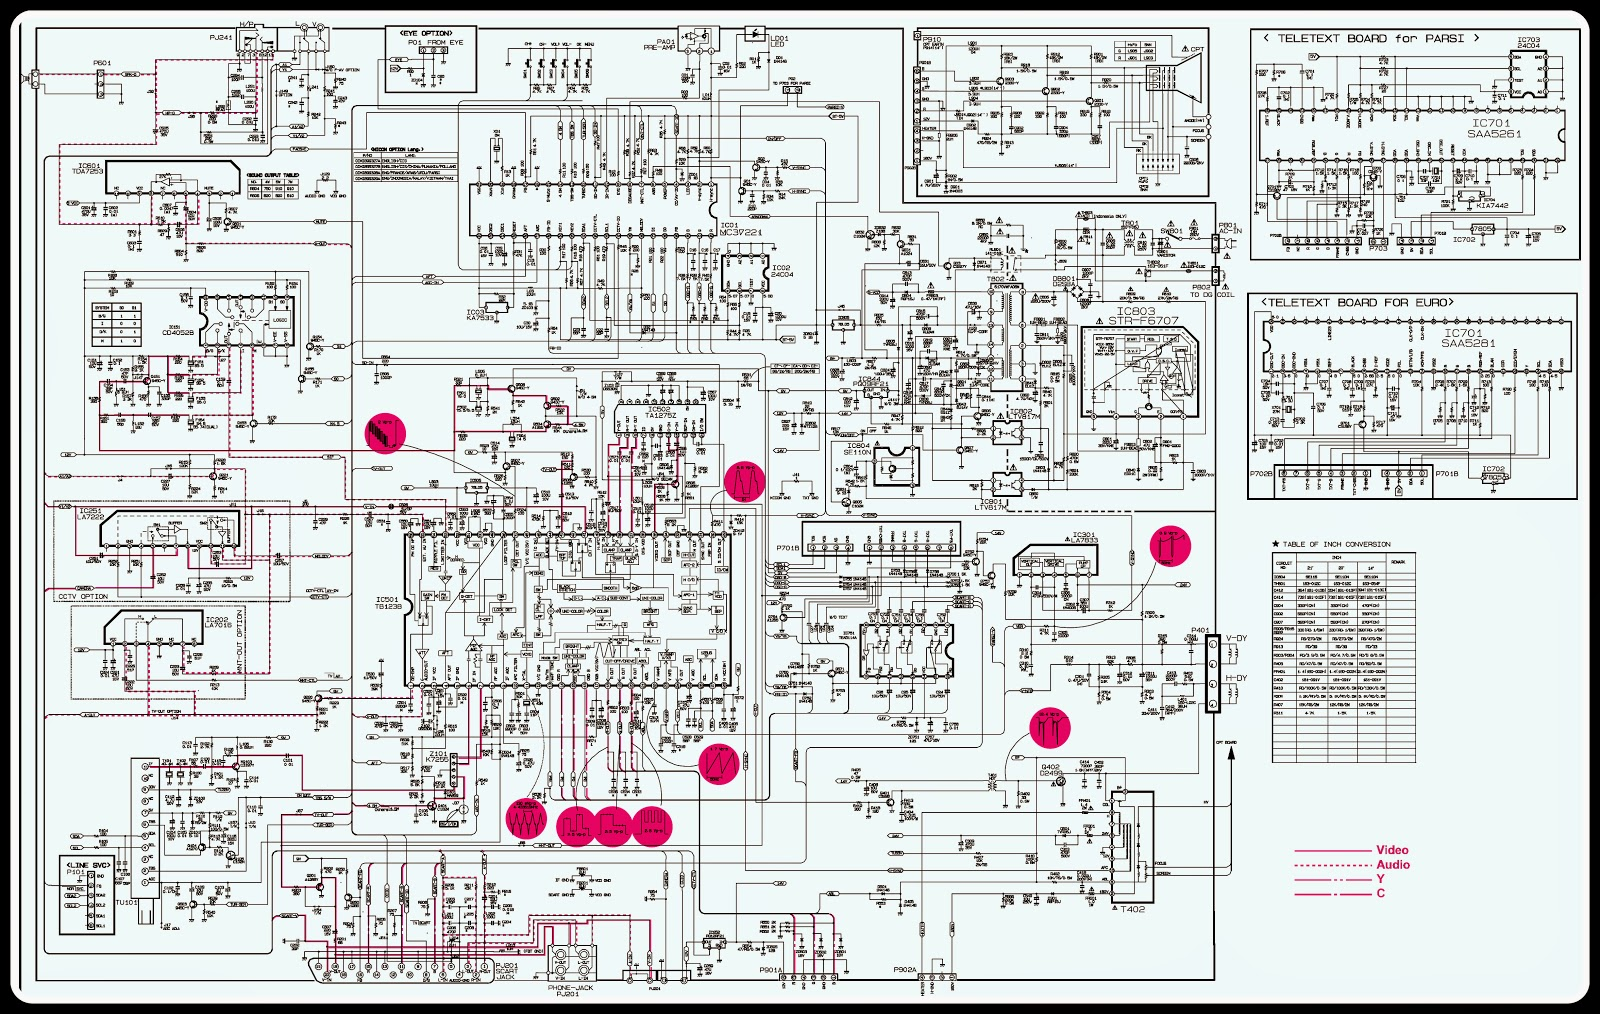 small resolution of lg tv schematic diagram furthermore led tv schematic diagram on tv besides samsung tv service manual on lg tv schematic diagram